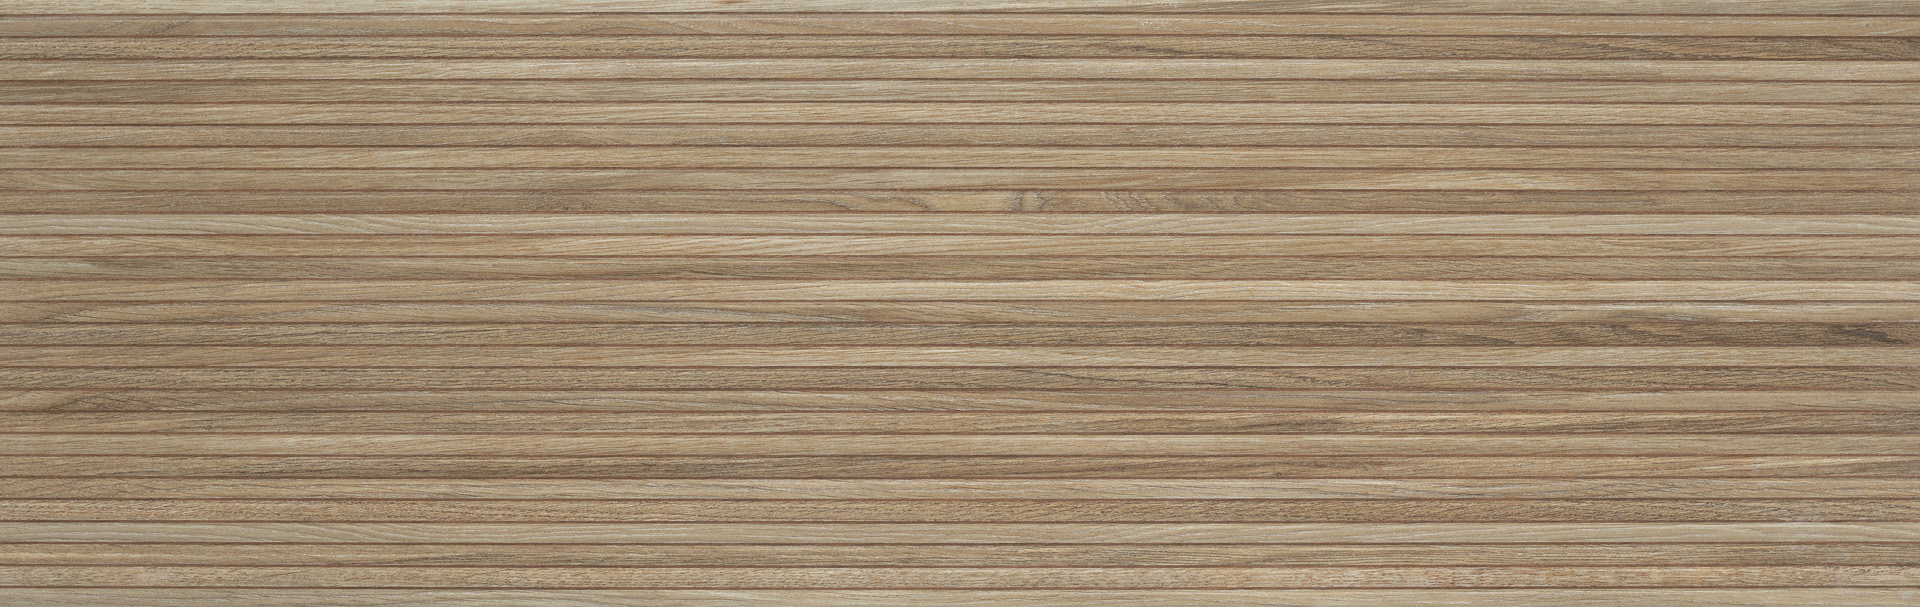 12.64  X 40 Linnear Natural textured Rectified Porcelain Tile